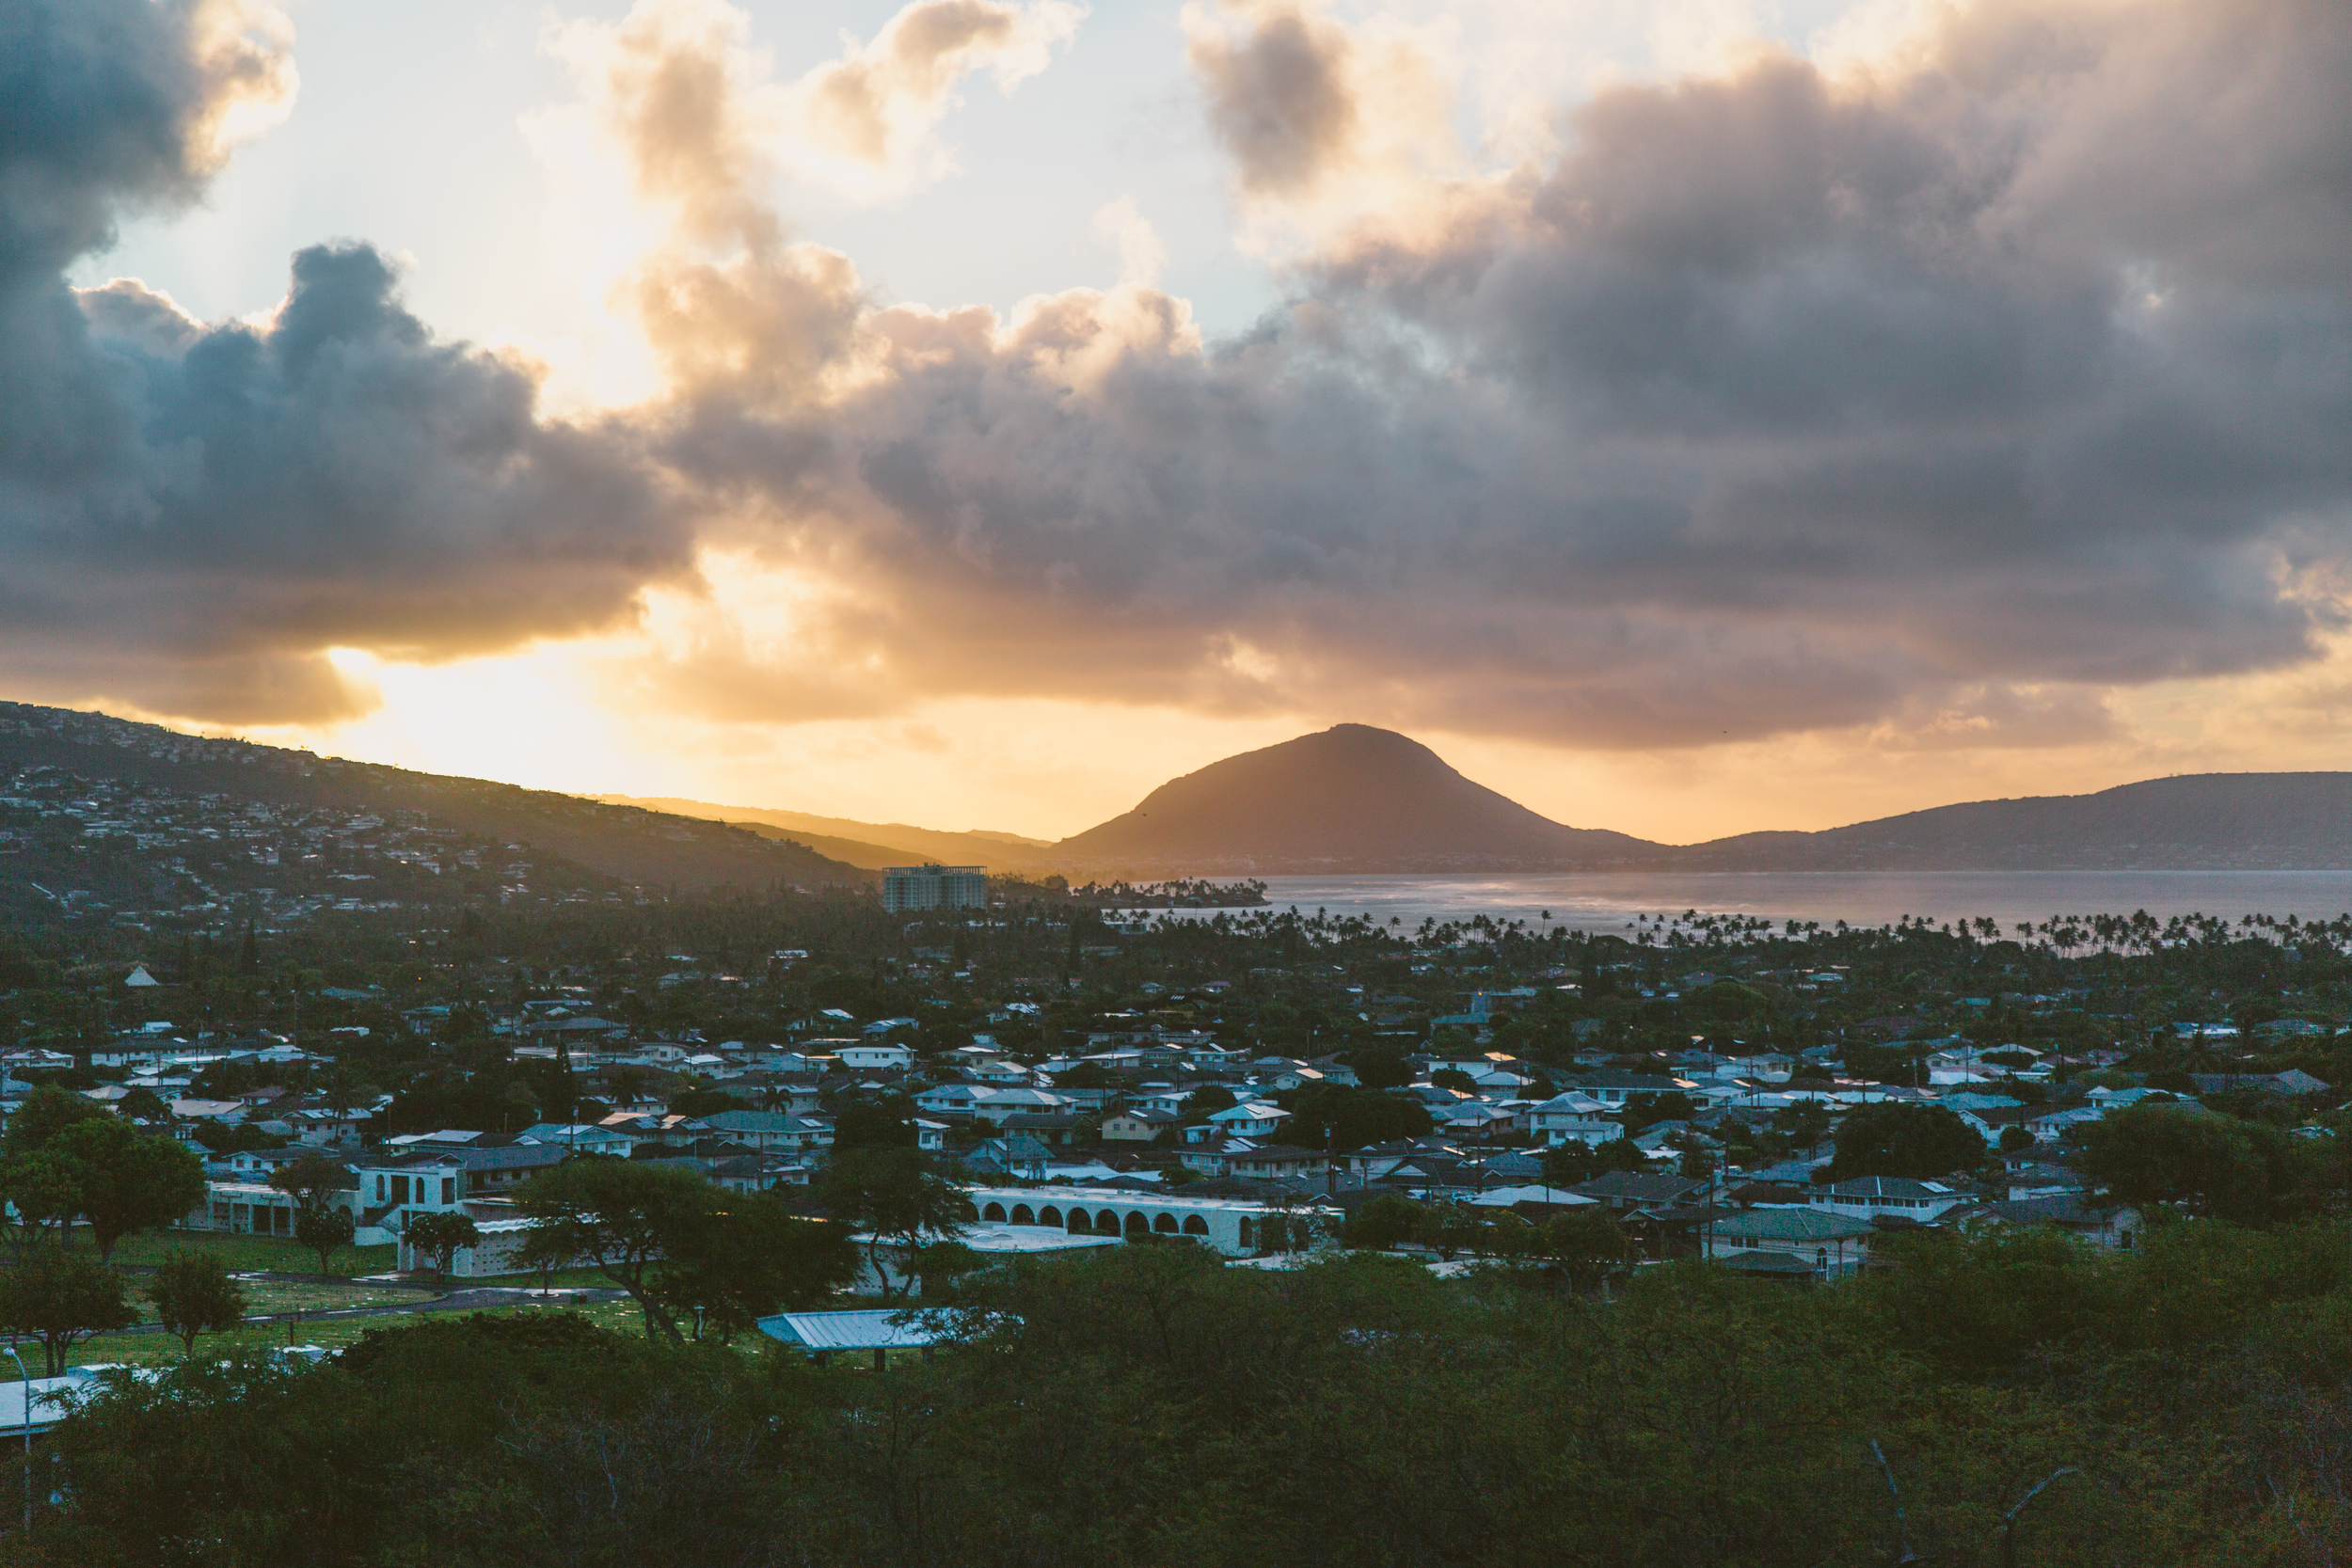 Sunrise from Diamond Head Crater, looking towards Koko Crater